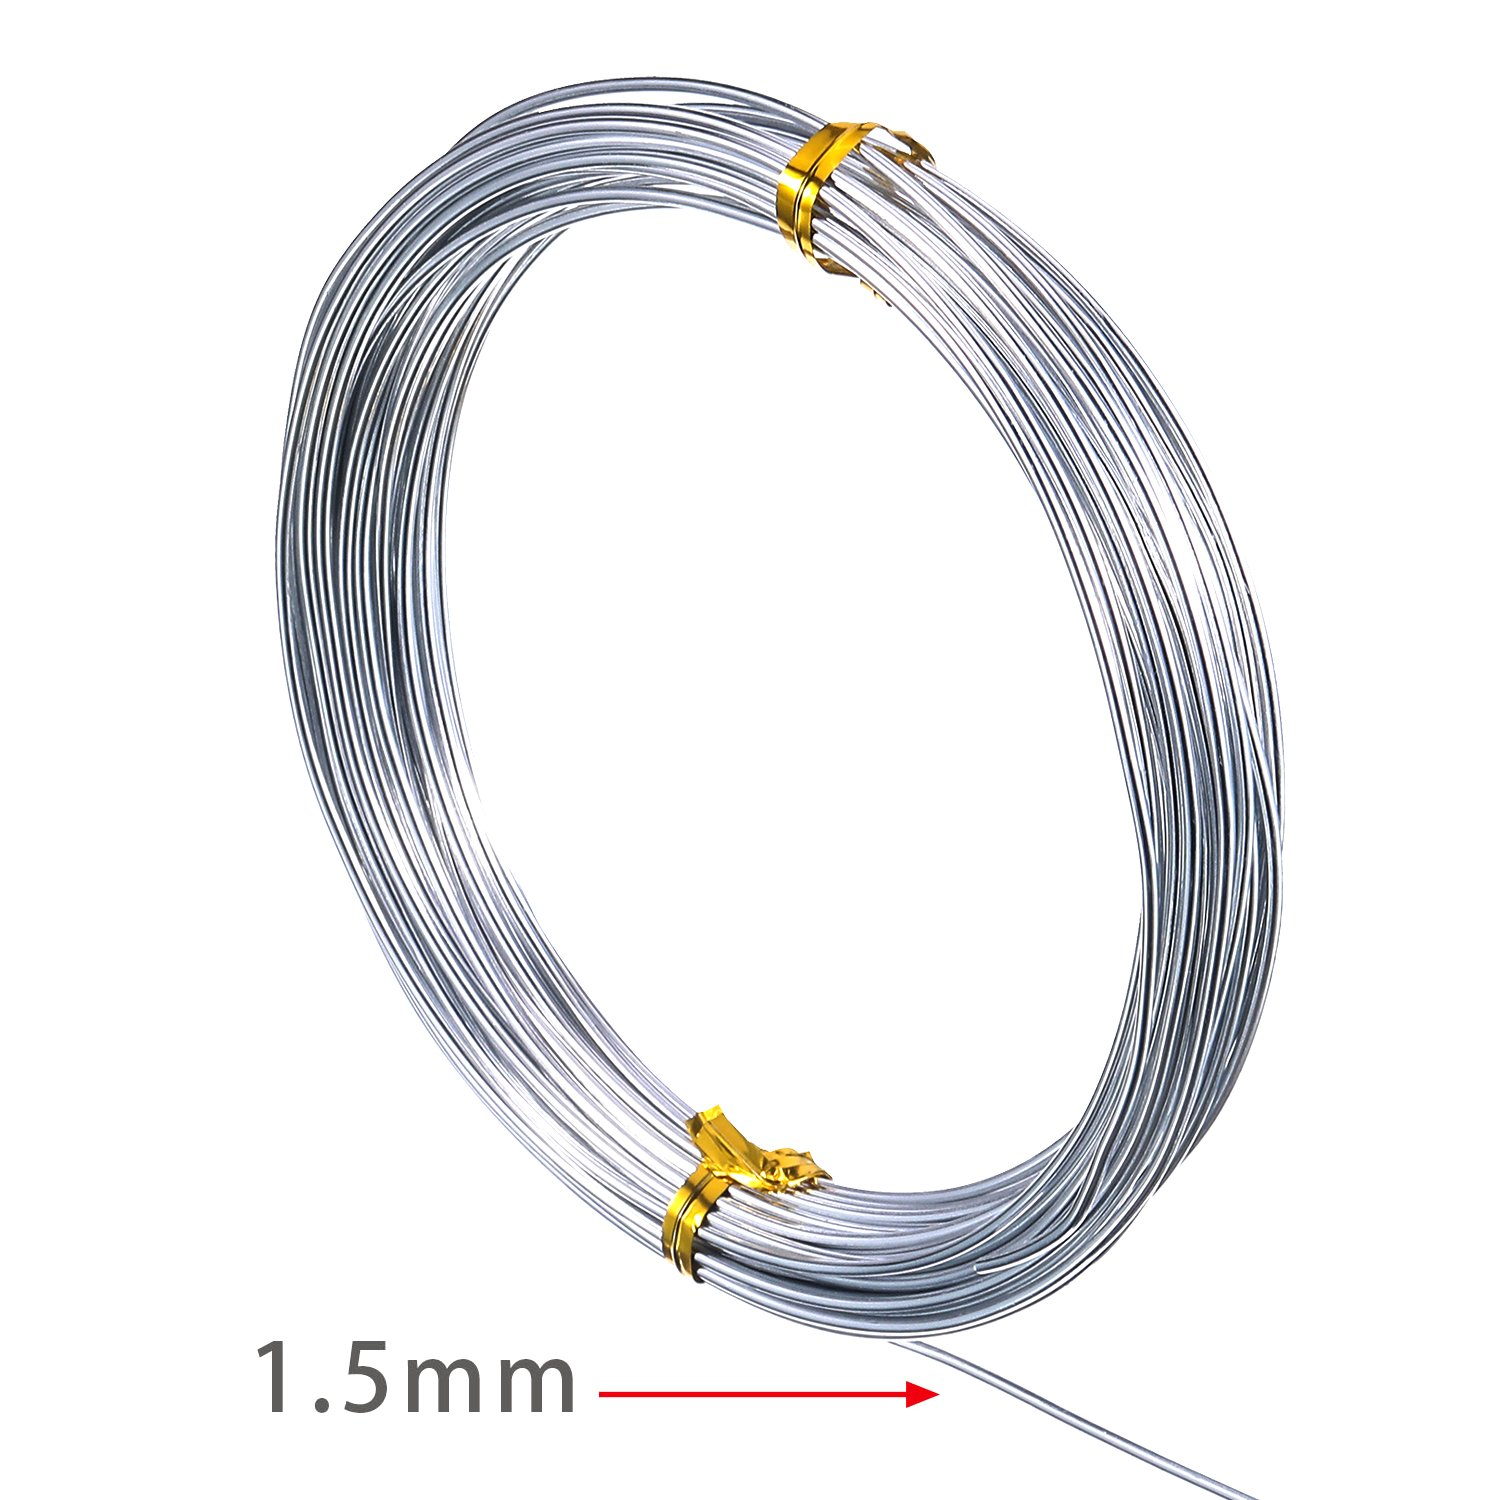 Amazon.com: TecUnite 65.6 Feet Silver Aluminum Craft Wire, Soft and ...